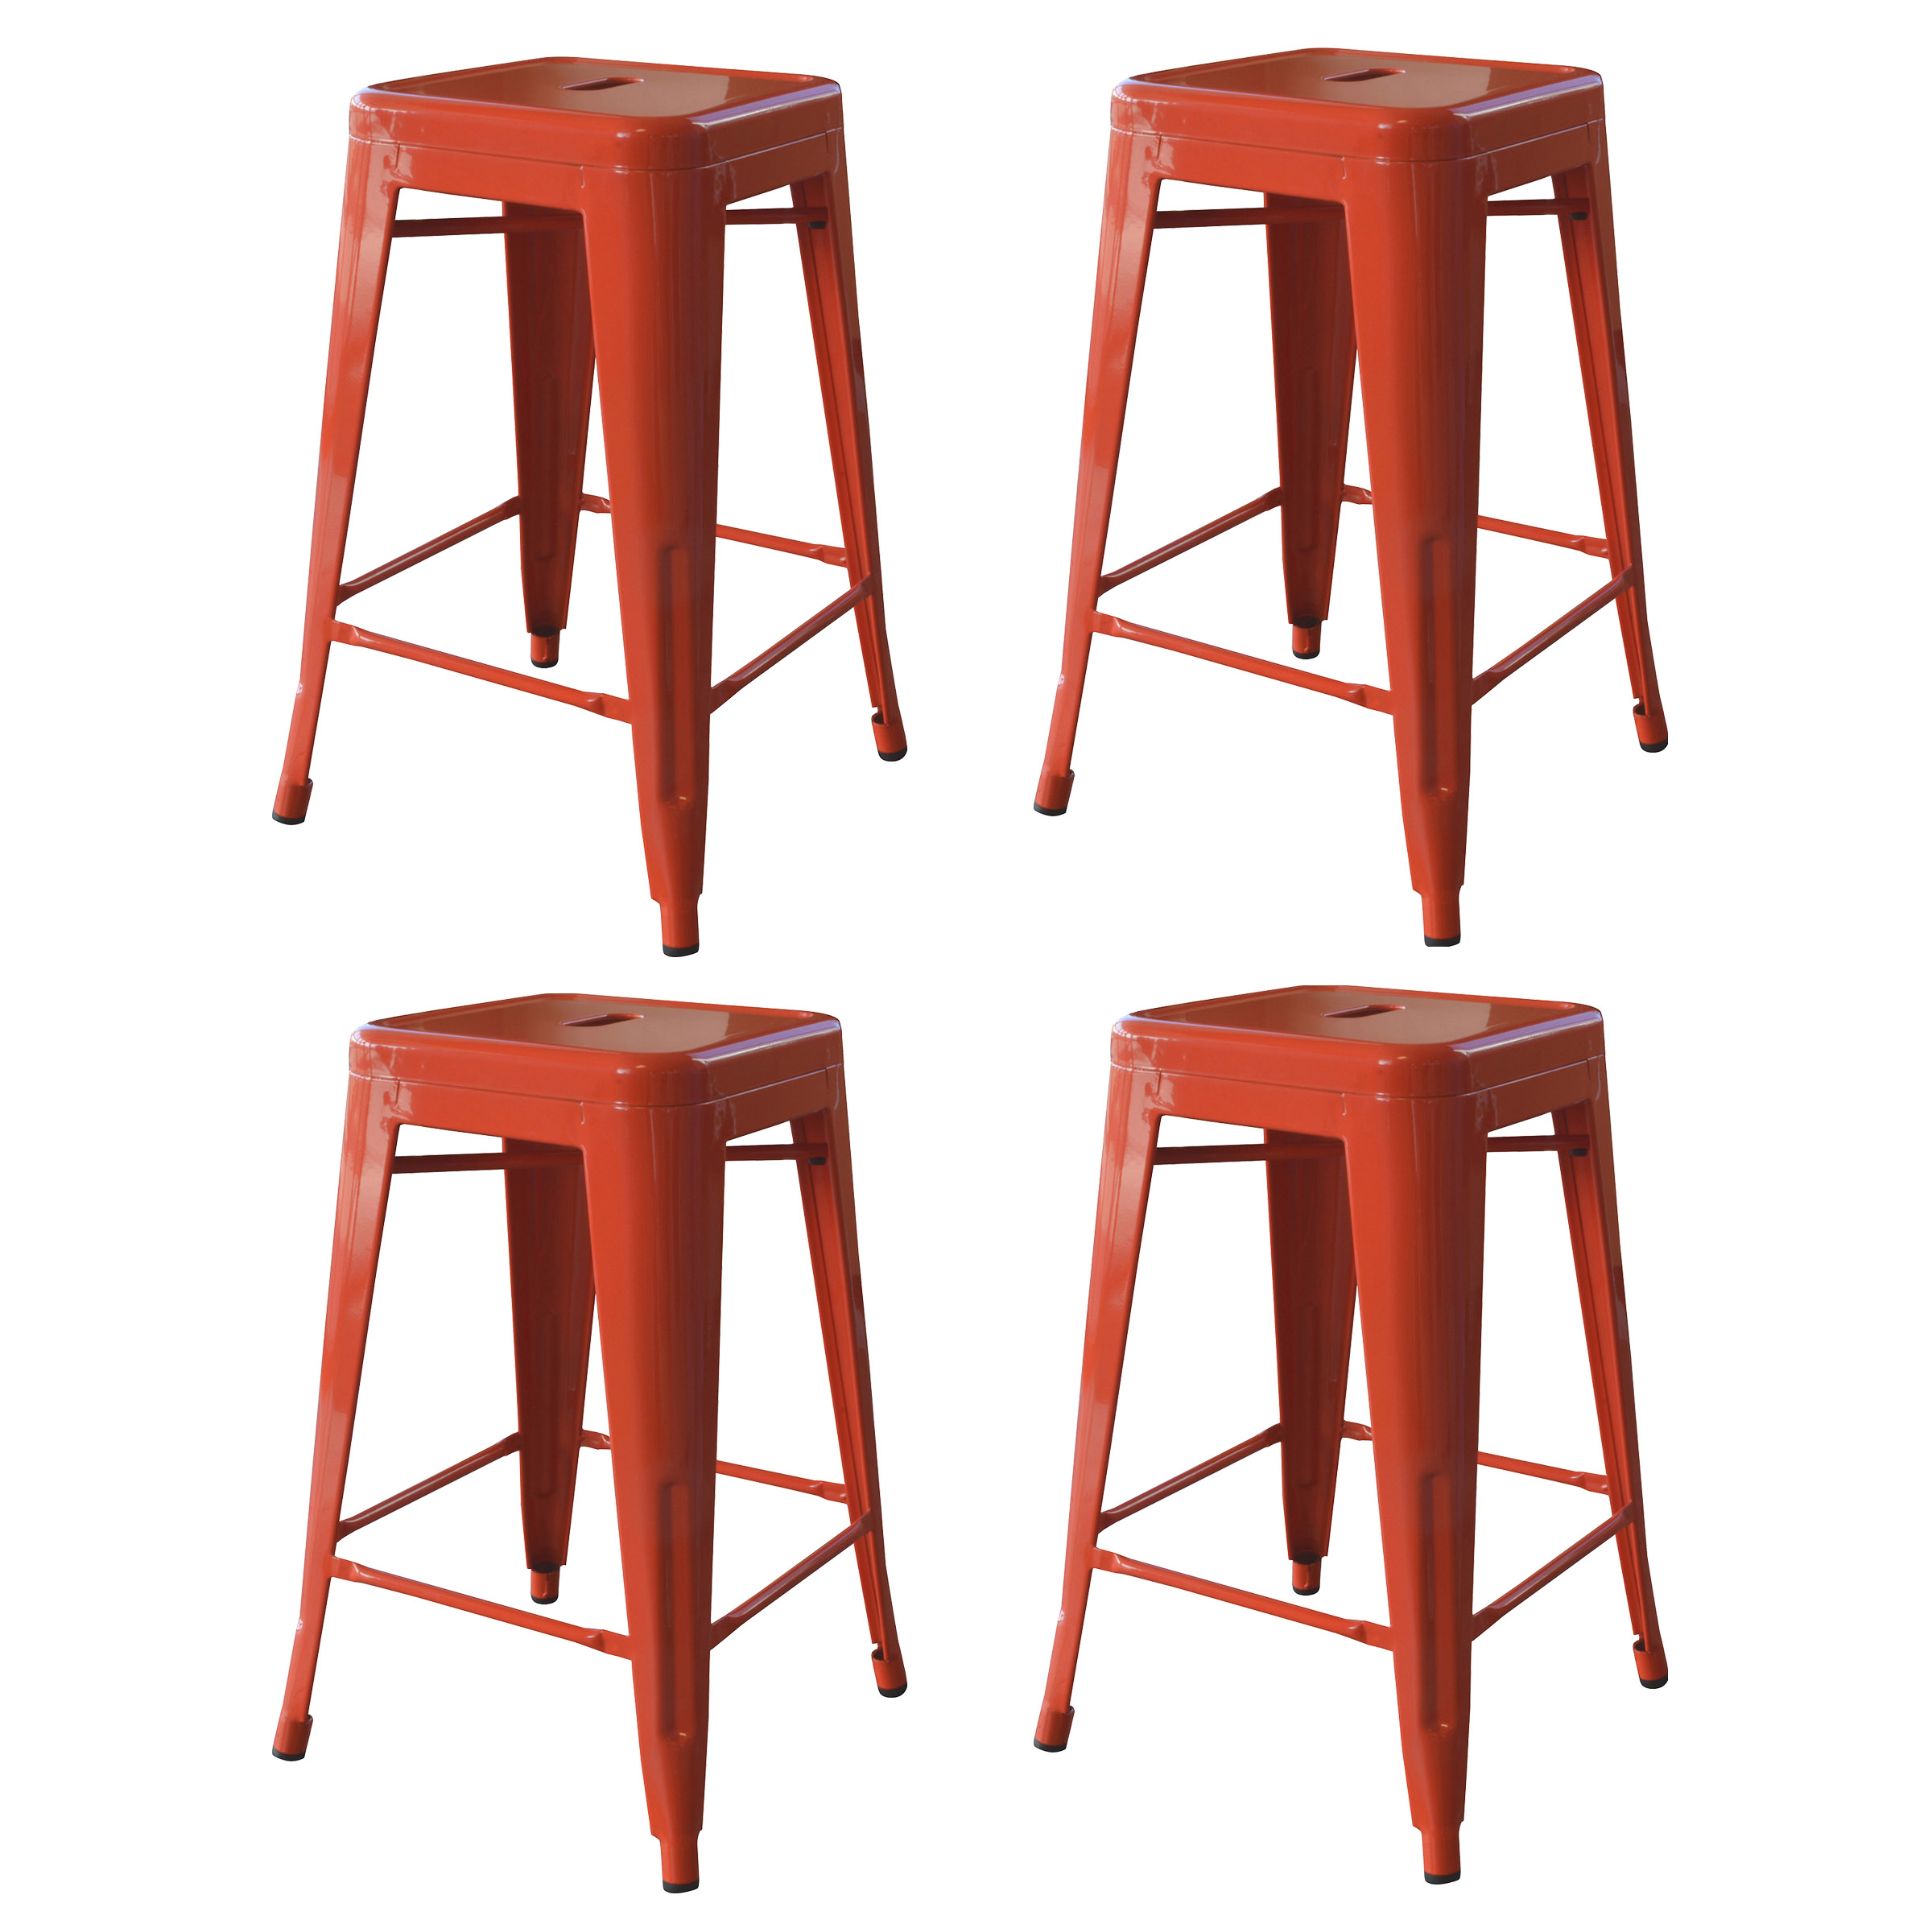 Amerihome Loft 24 Metal Bar Stool Orange Set Of 4 Walmartcom